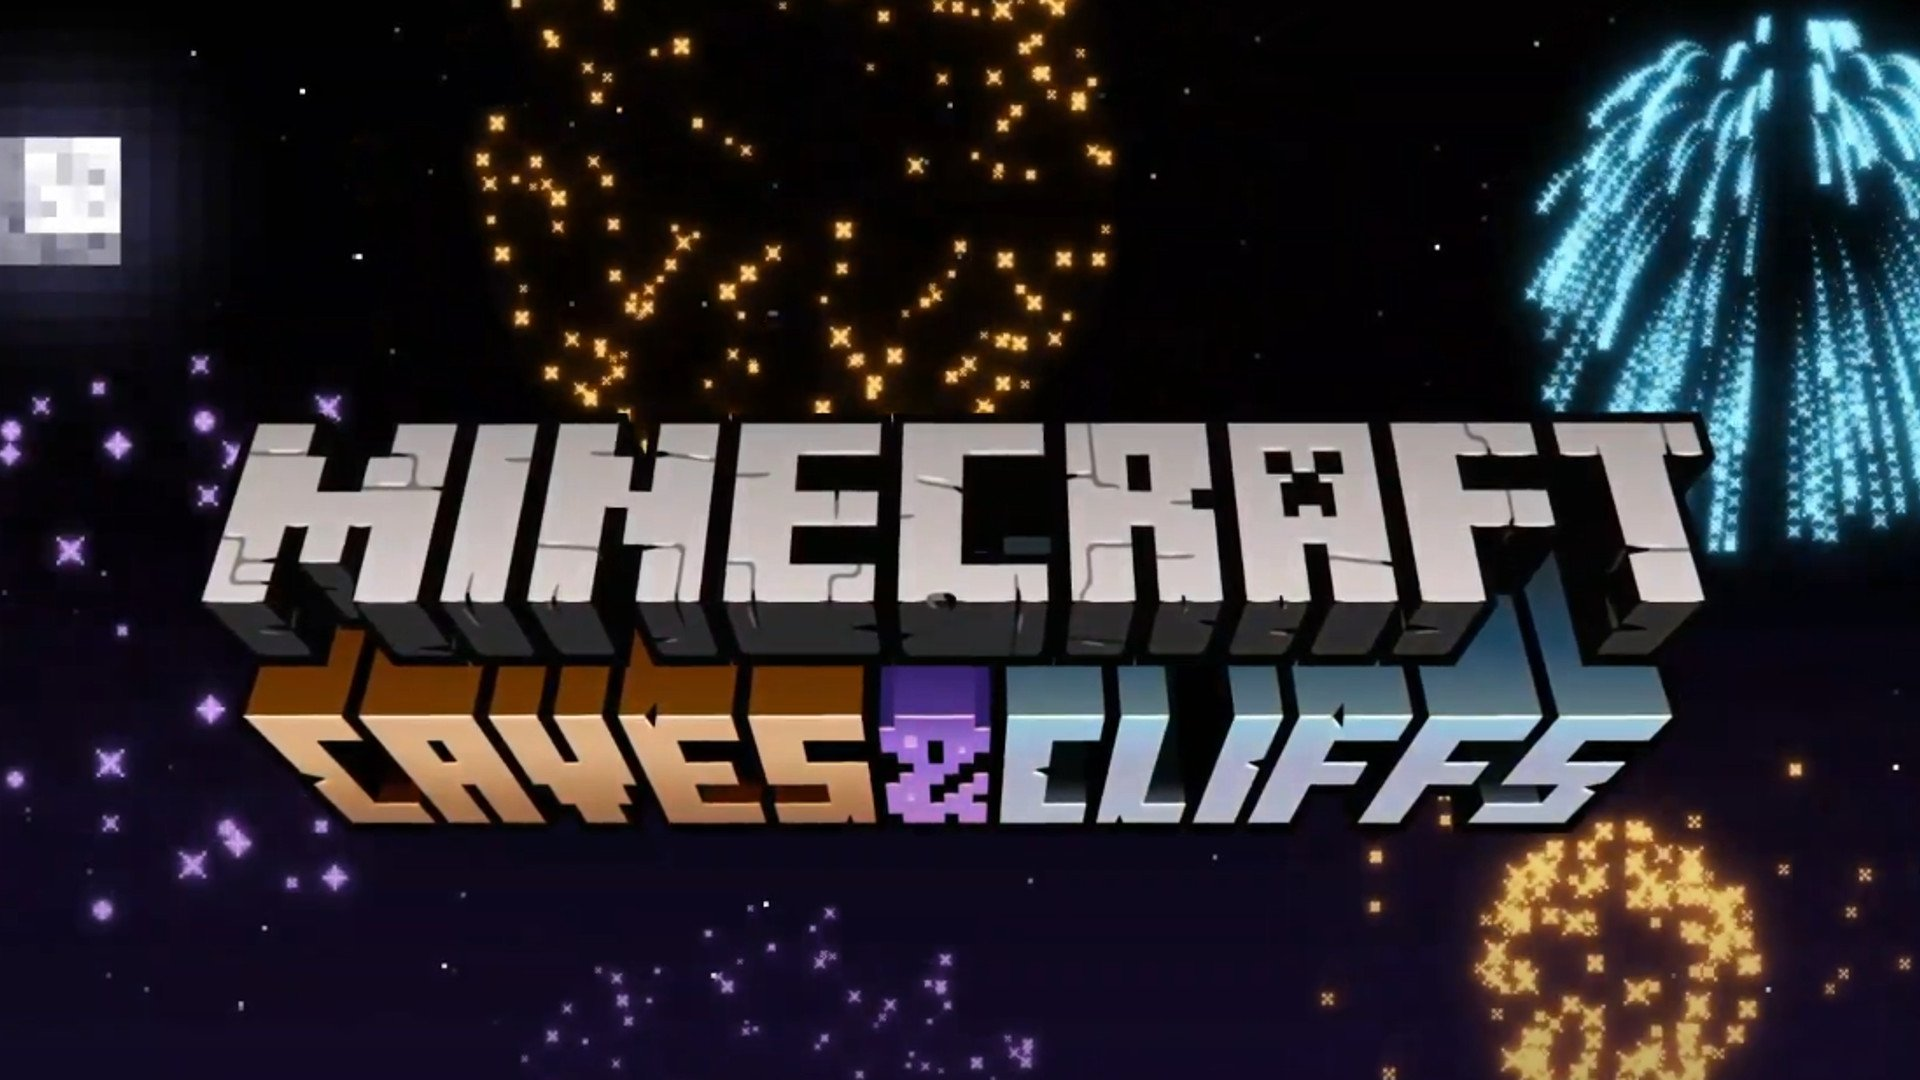 First Minecraft Bedrock Beta For The Caves And Cliffs Update Introduces Lots Of Snow And Goats!